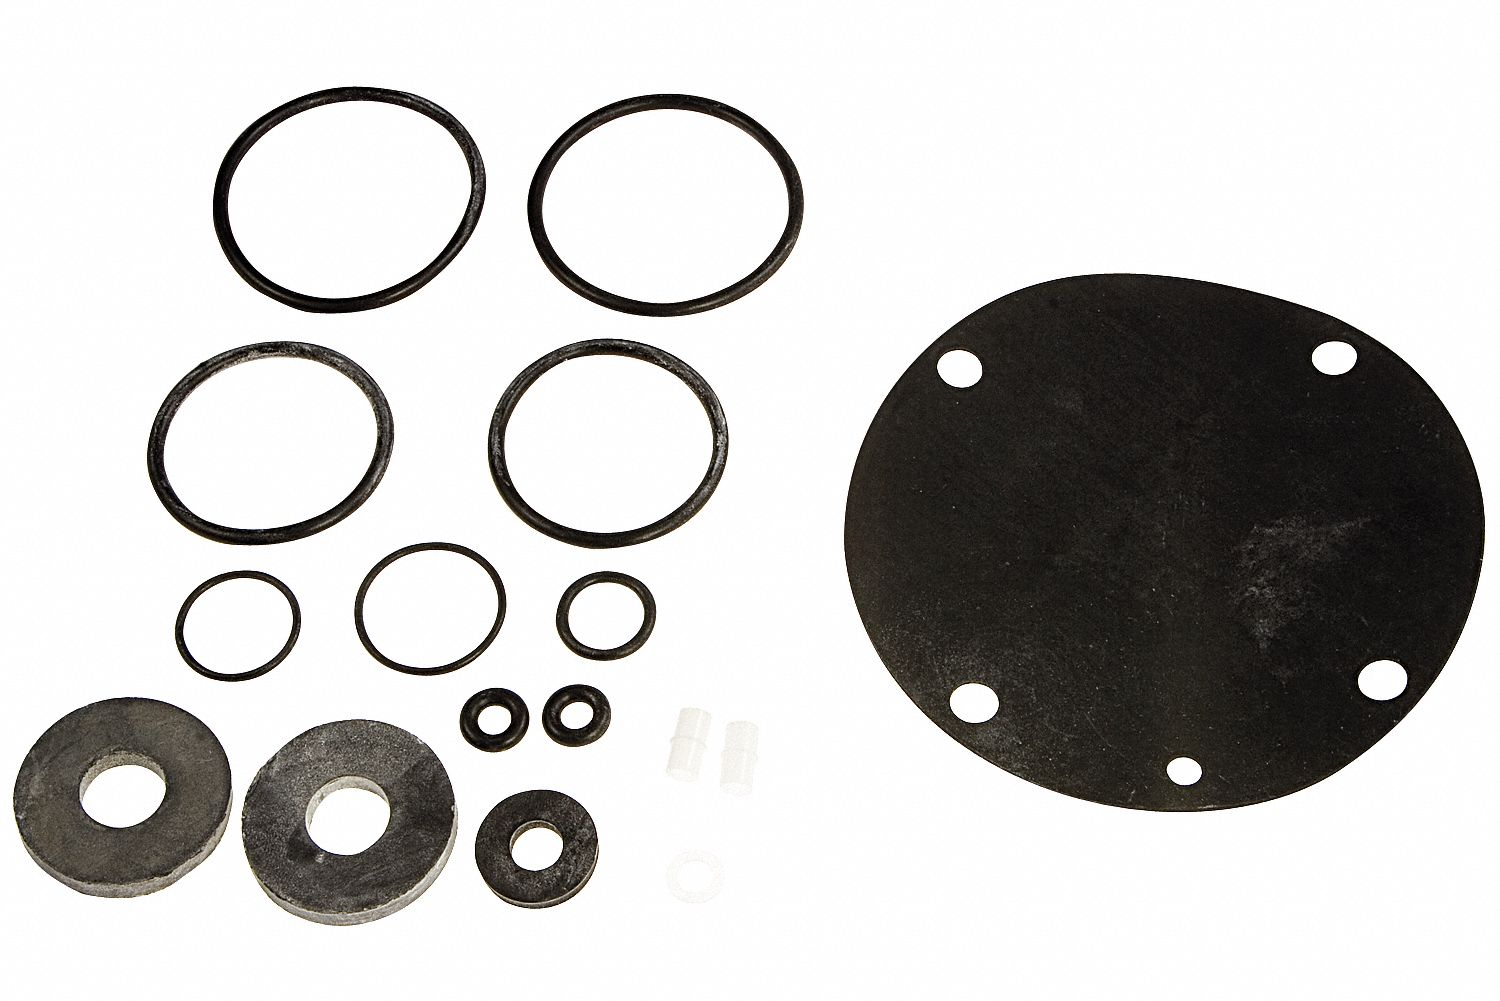 Rubber Parts Kit, For Use With Febco Backflow, 3/4 to 1 in